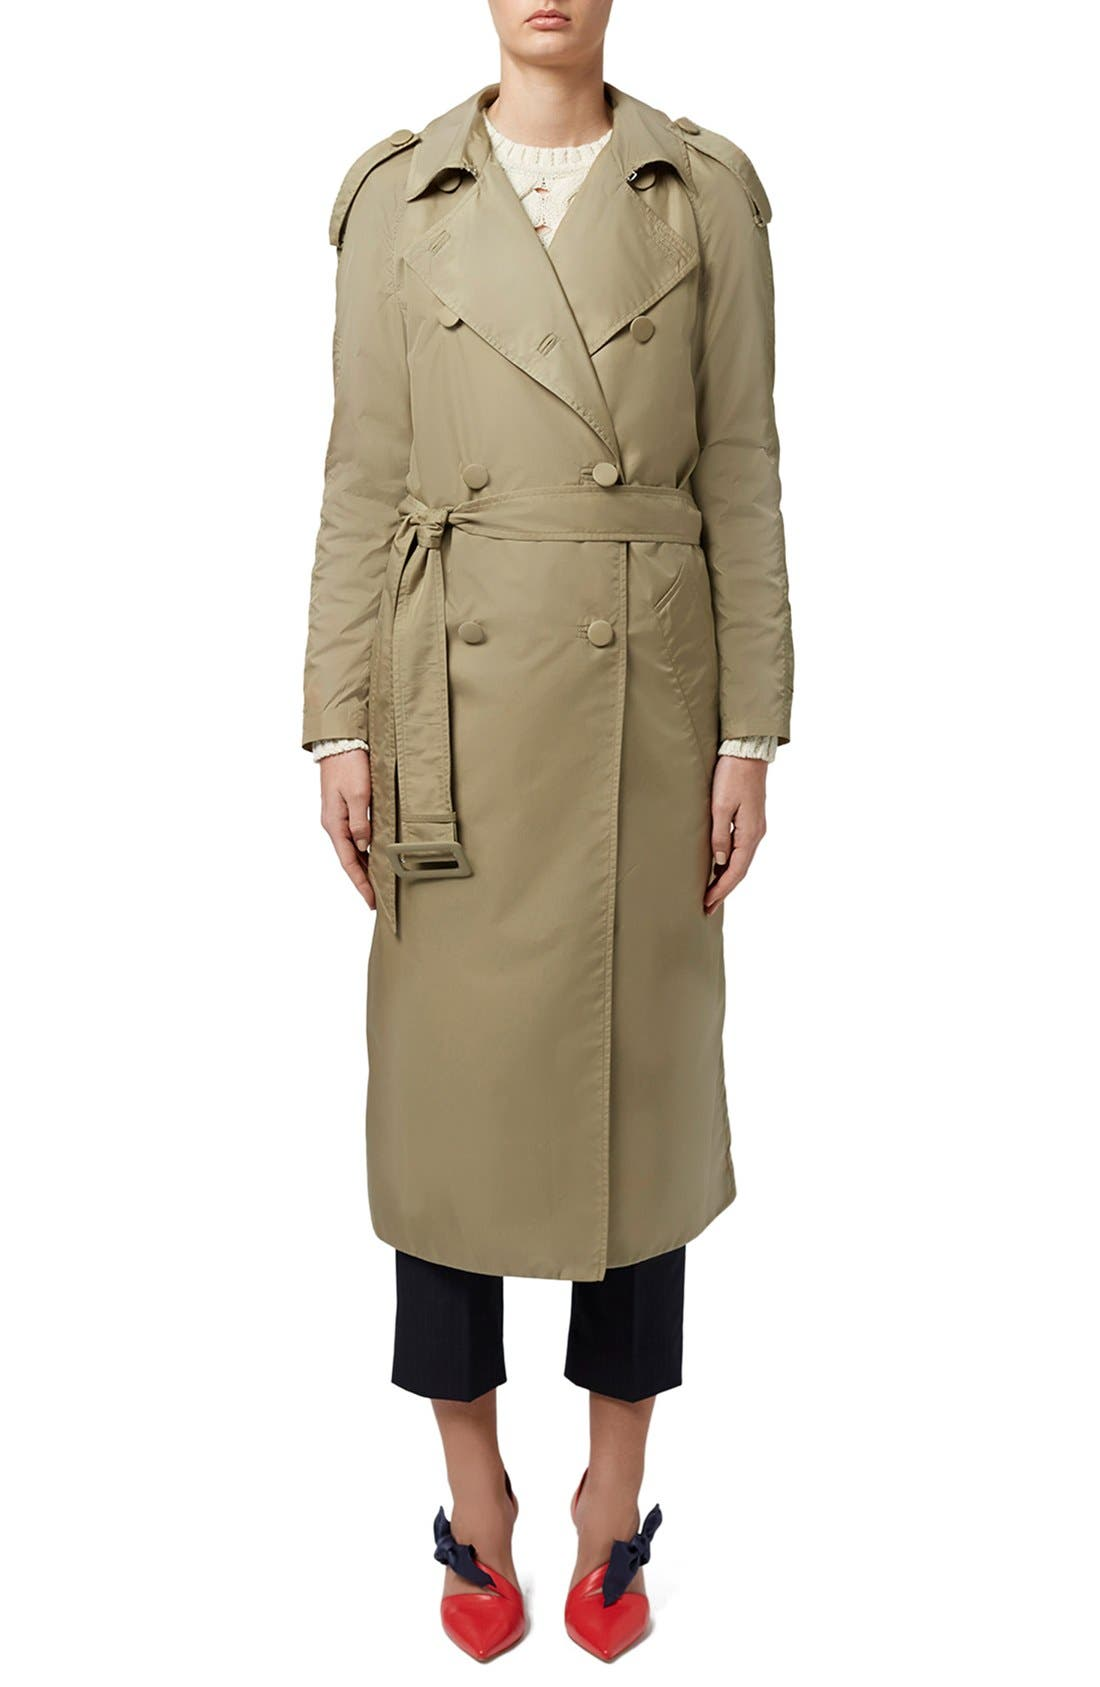 Alternate Image 1 Selected - Topshop Unique 'Great Smith' Double Breasted Trench Coat